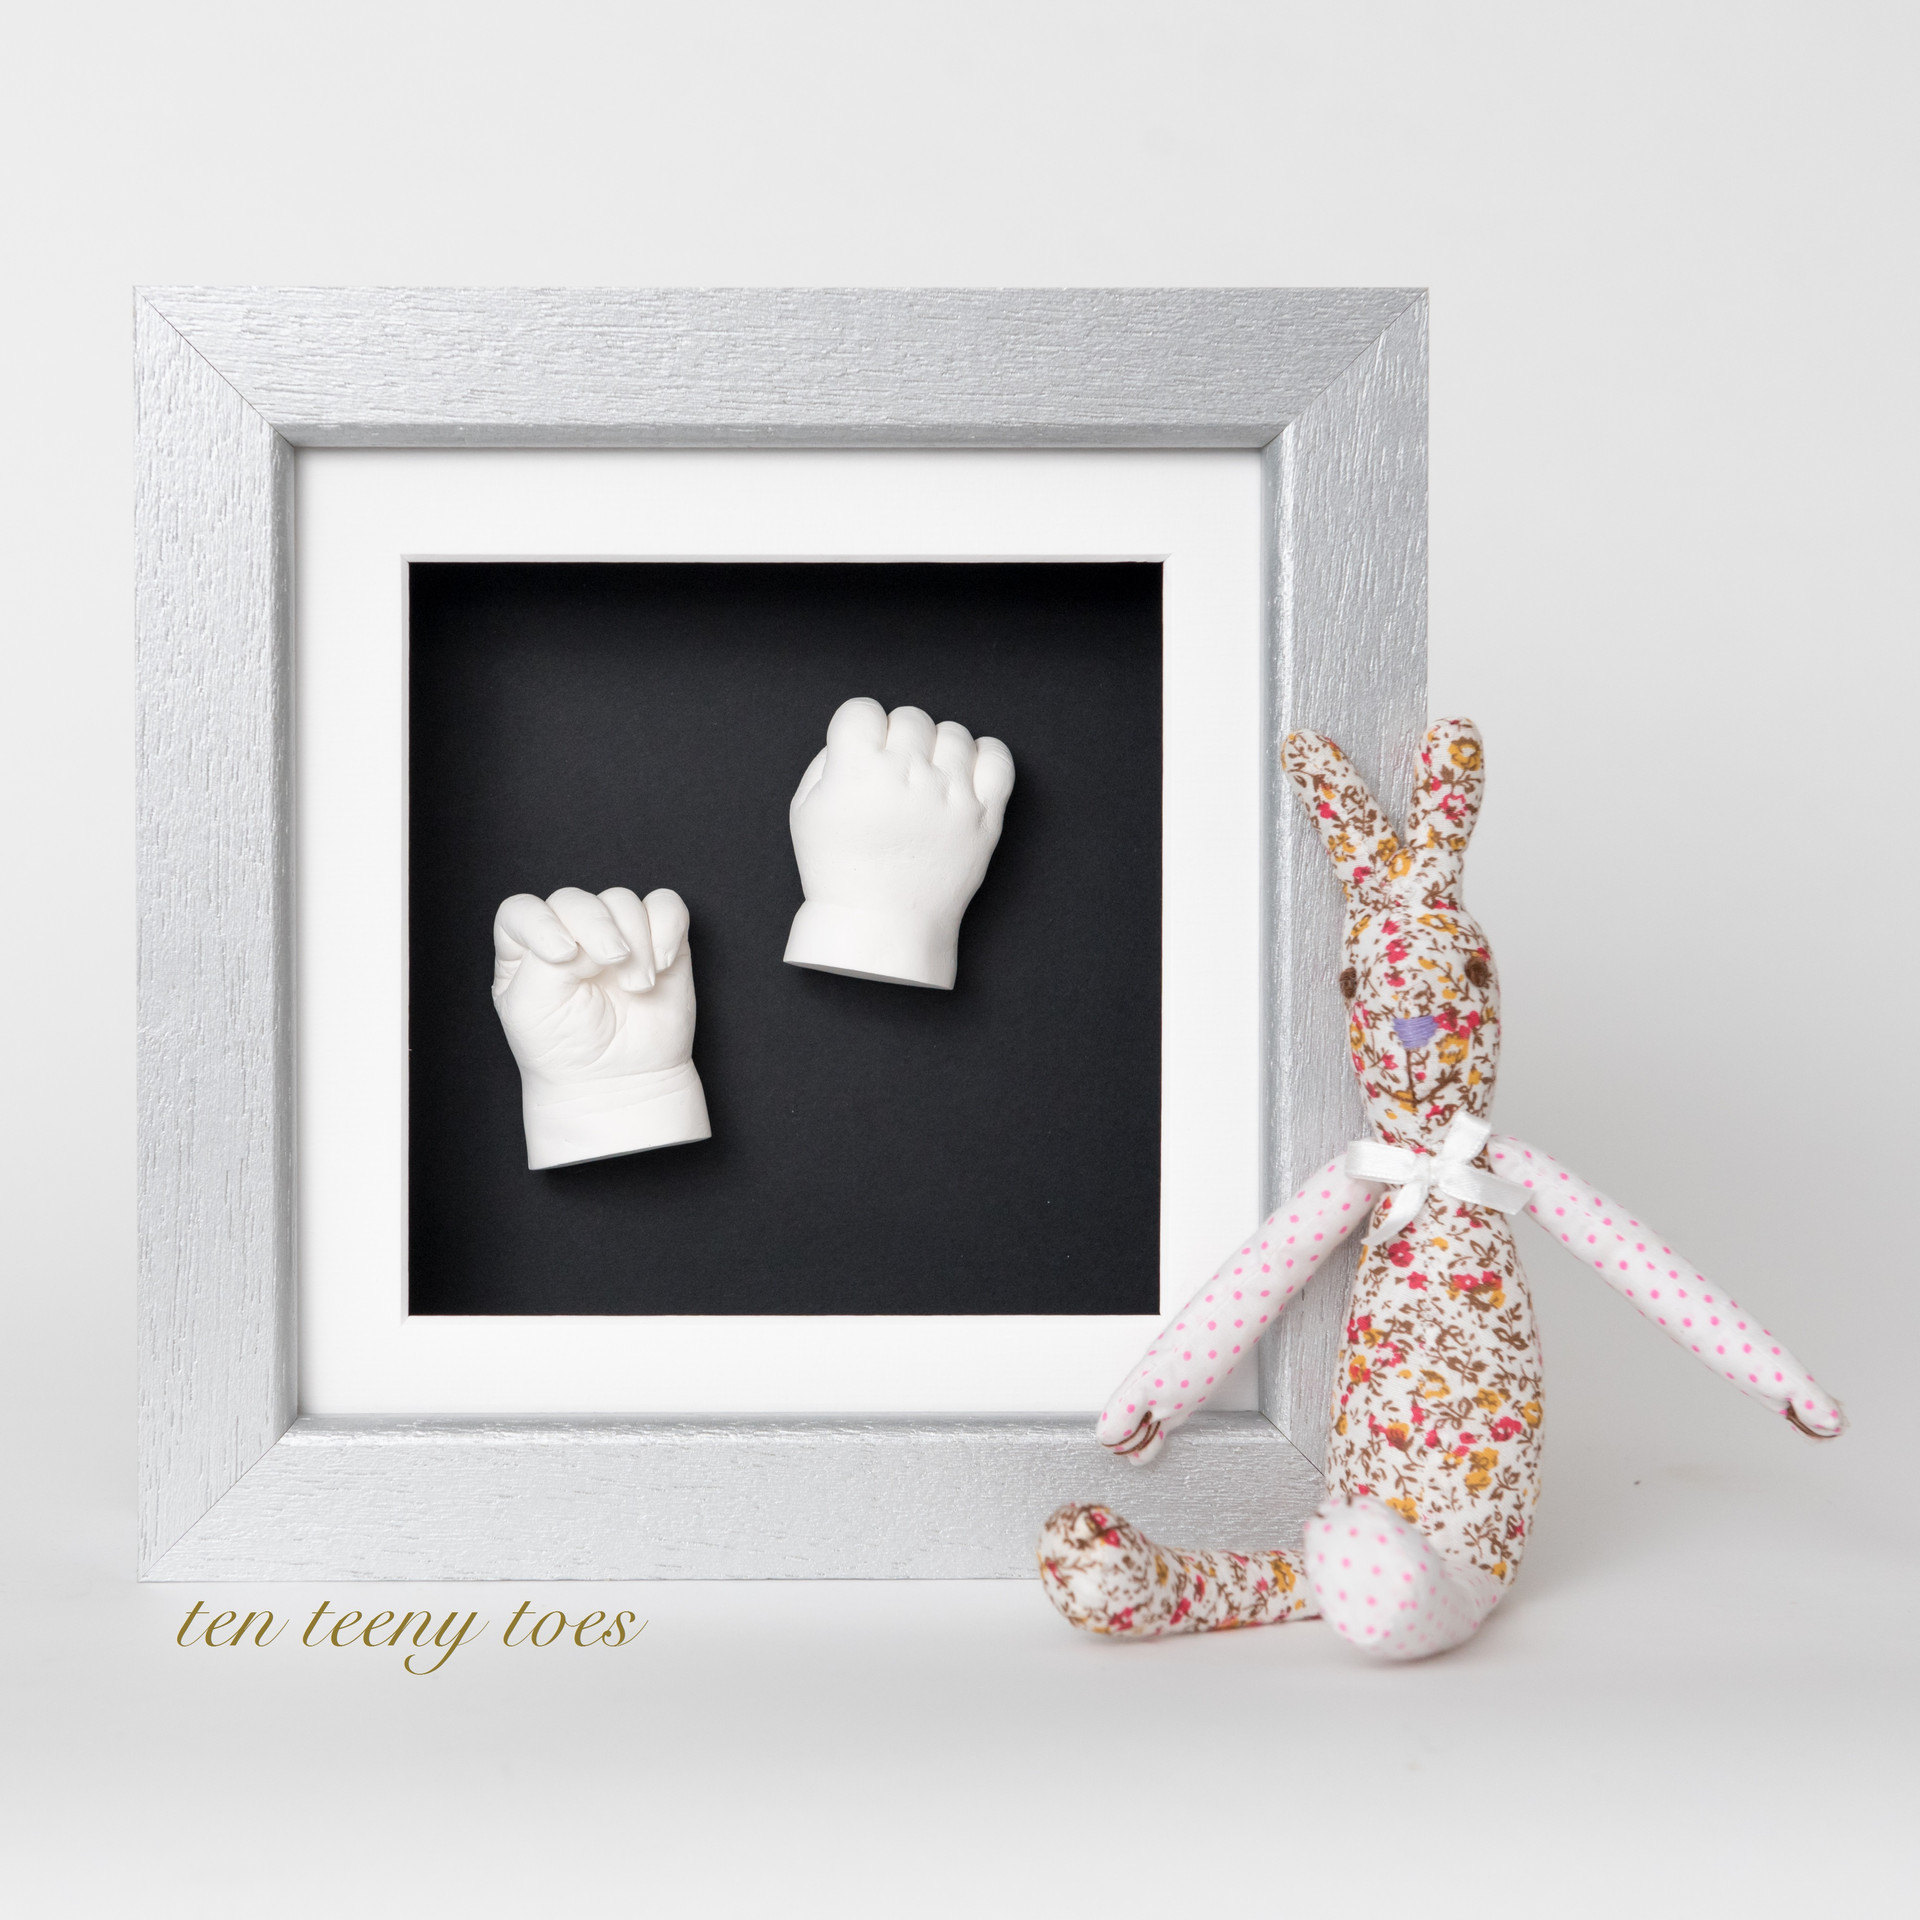 Two white hand casts in a silver contemporary hardwood frame.